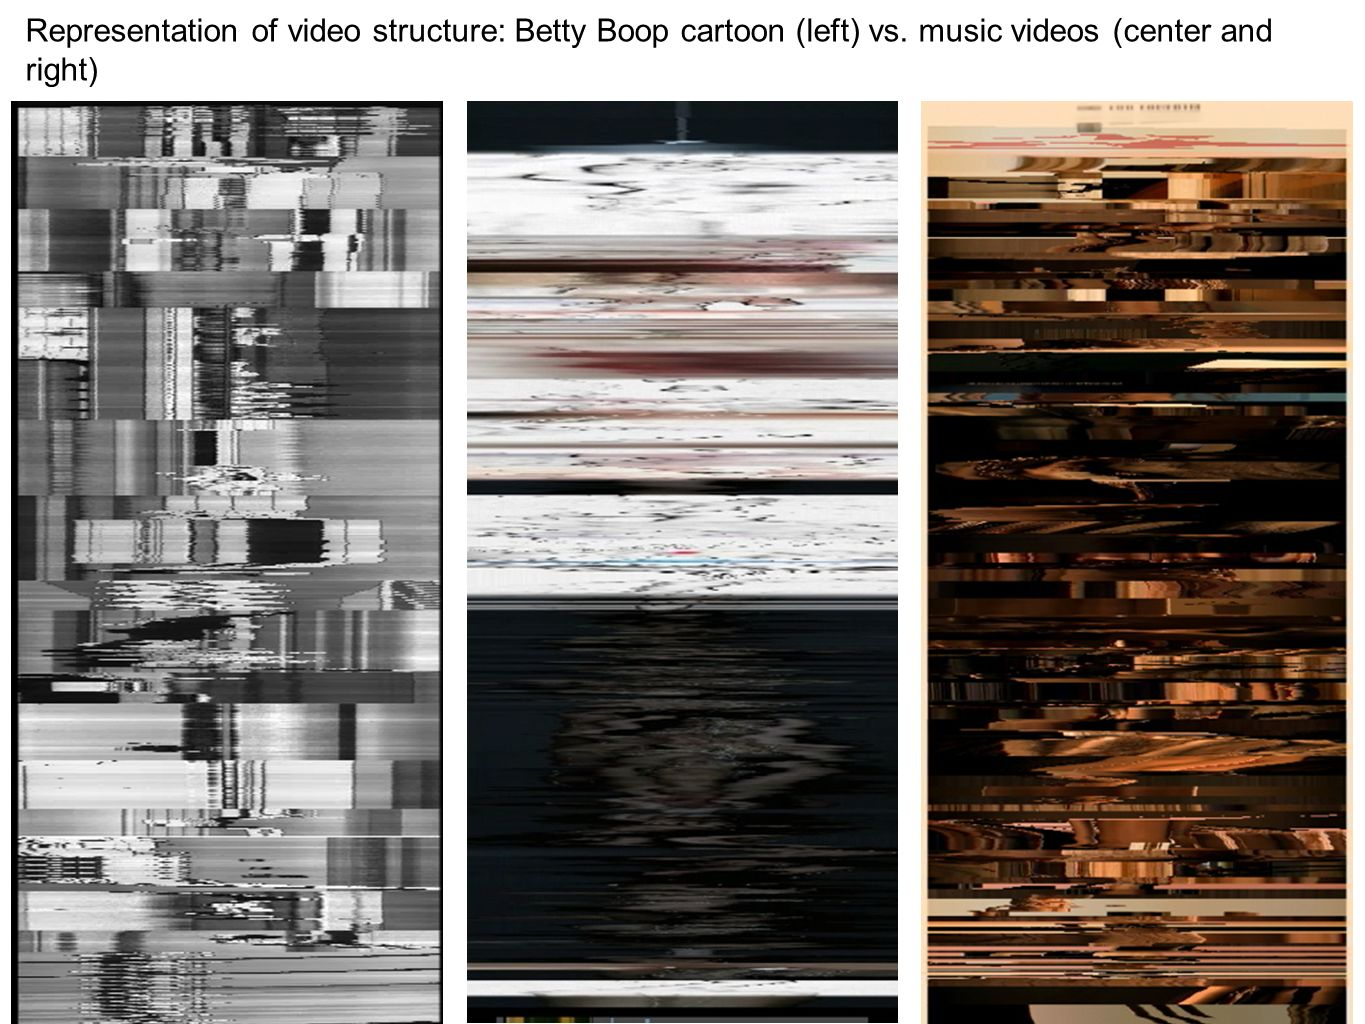 Representation of video structure: Betty Boop cartoon (left) vs. music videos (center and right)